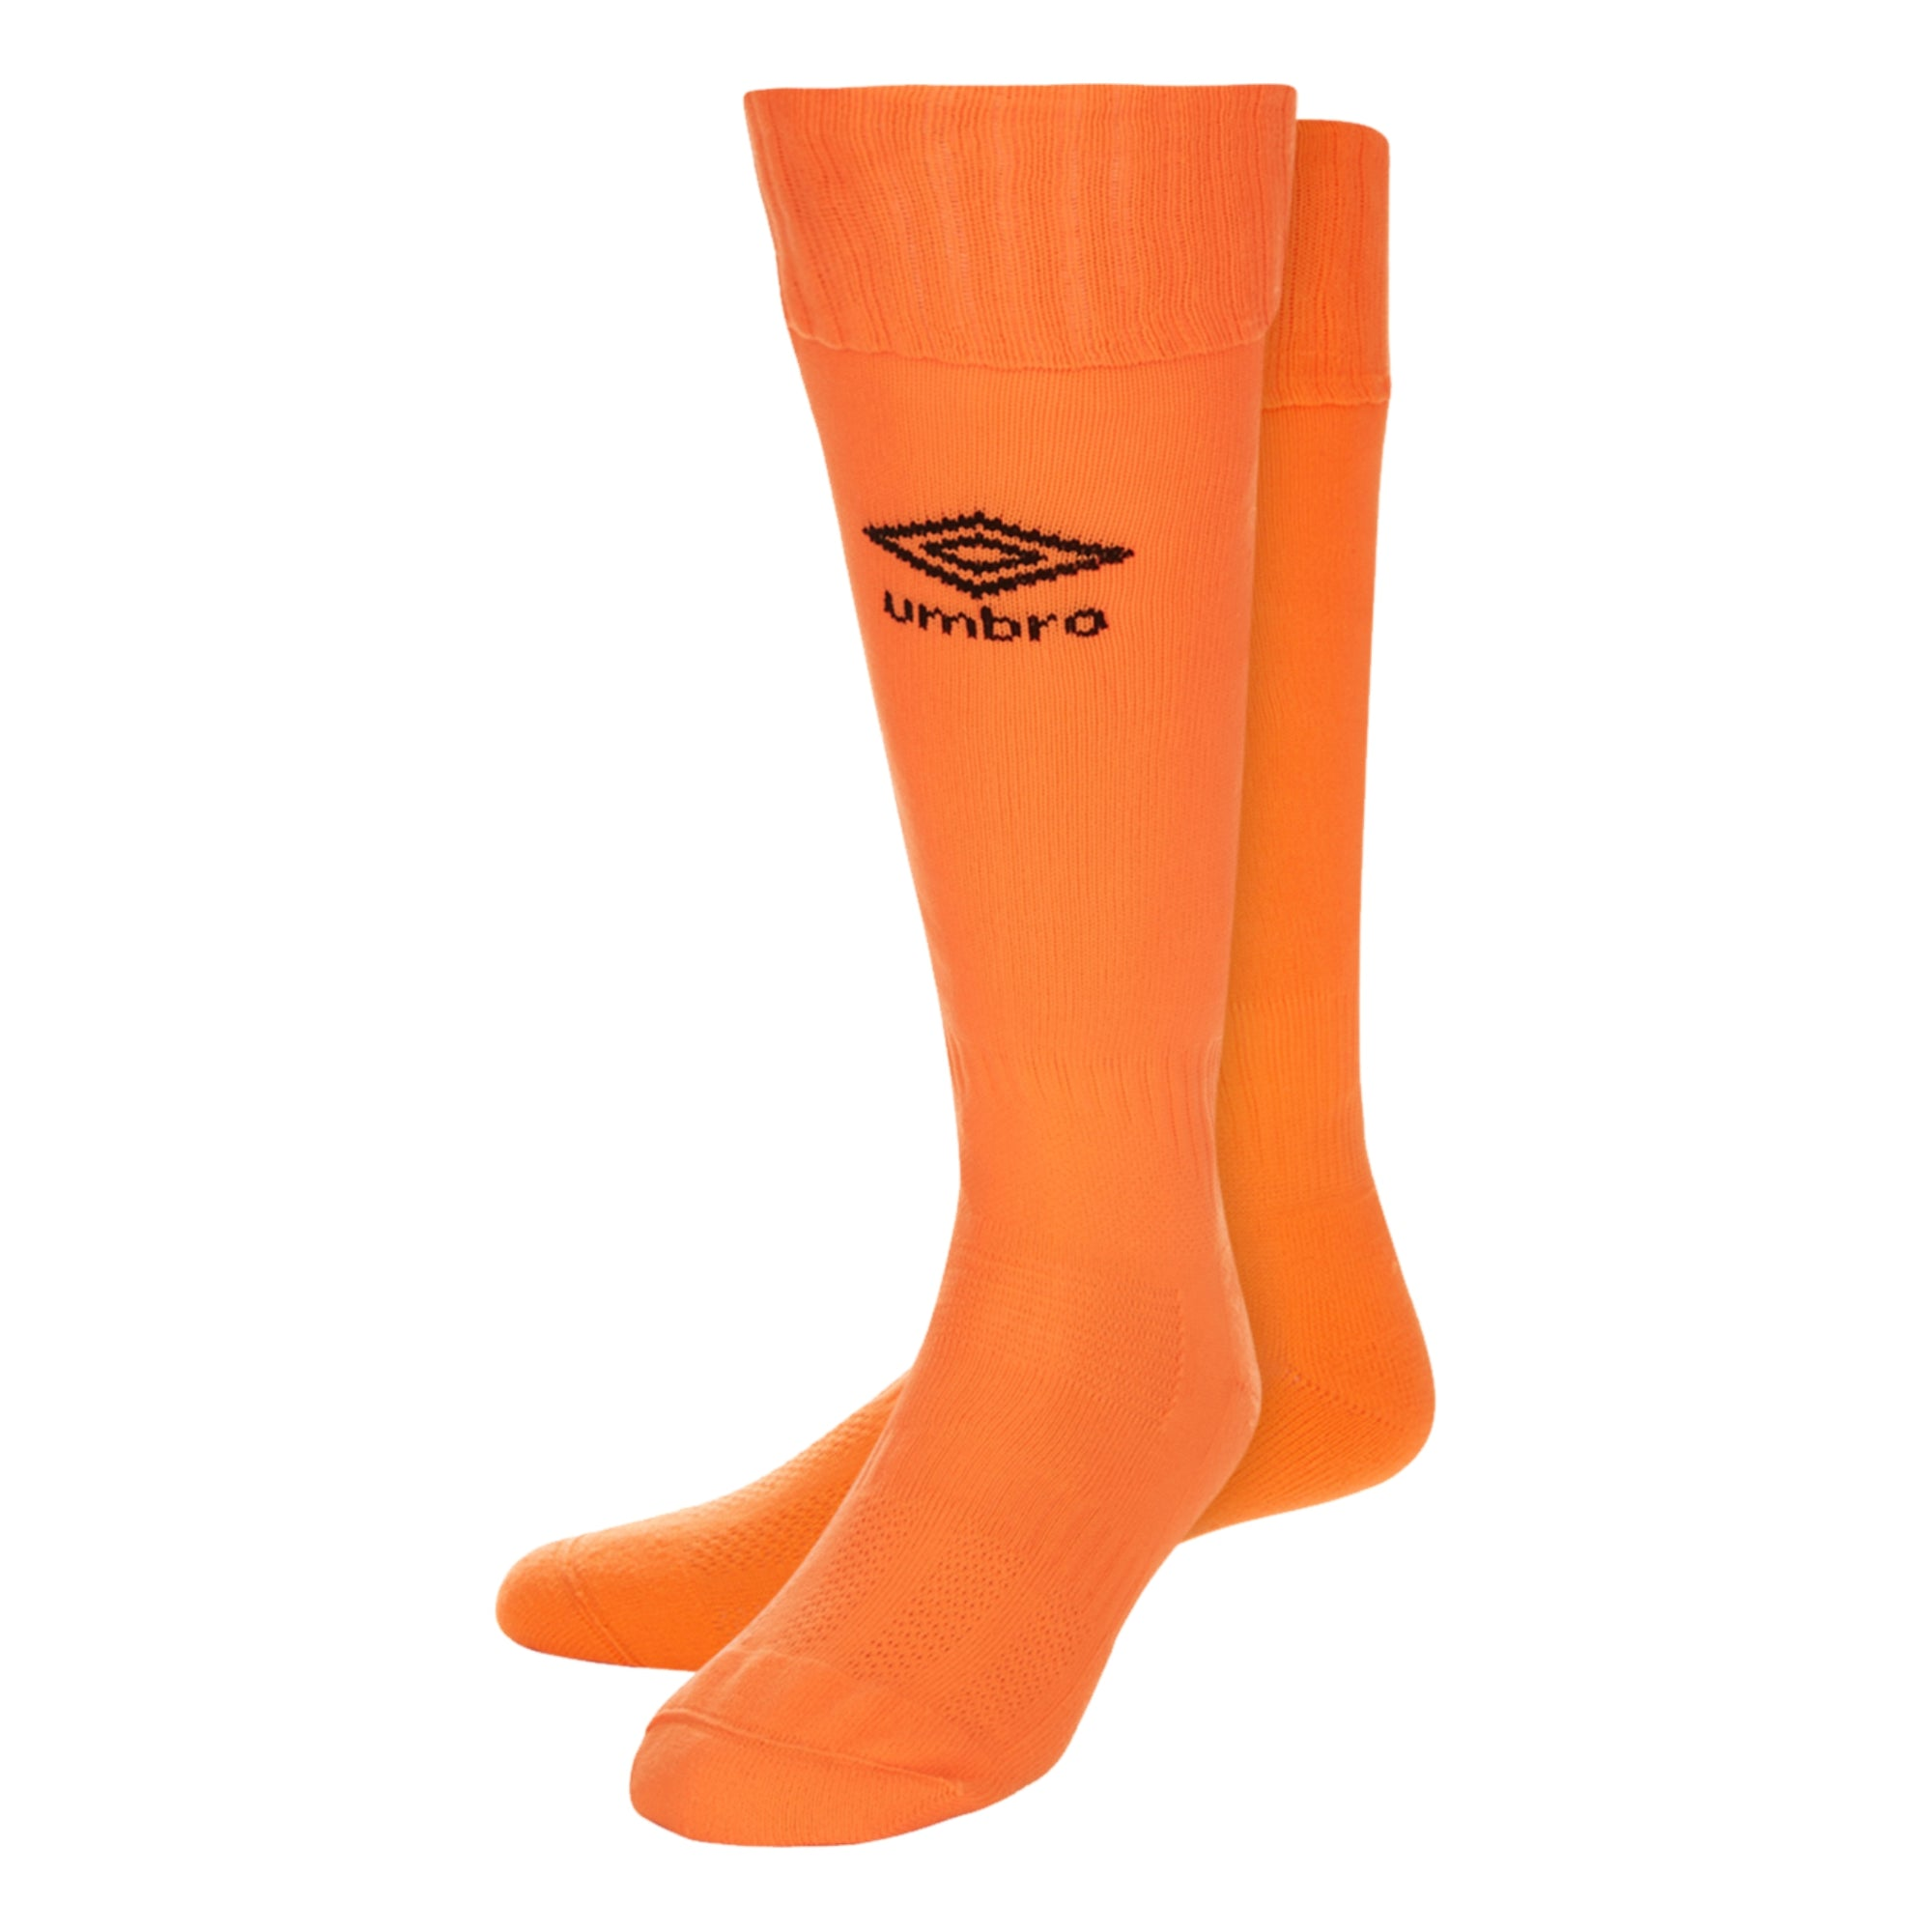 Umbro Classico Sock - Shocking Orange